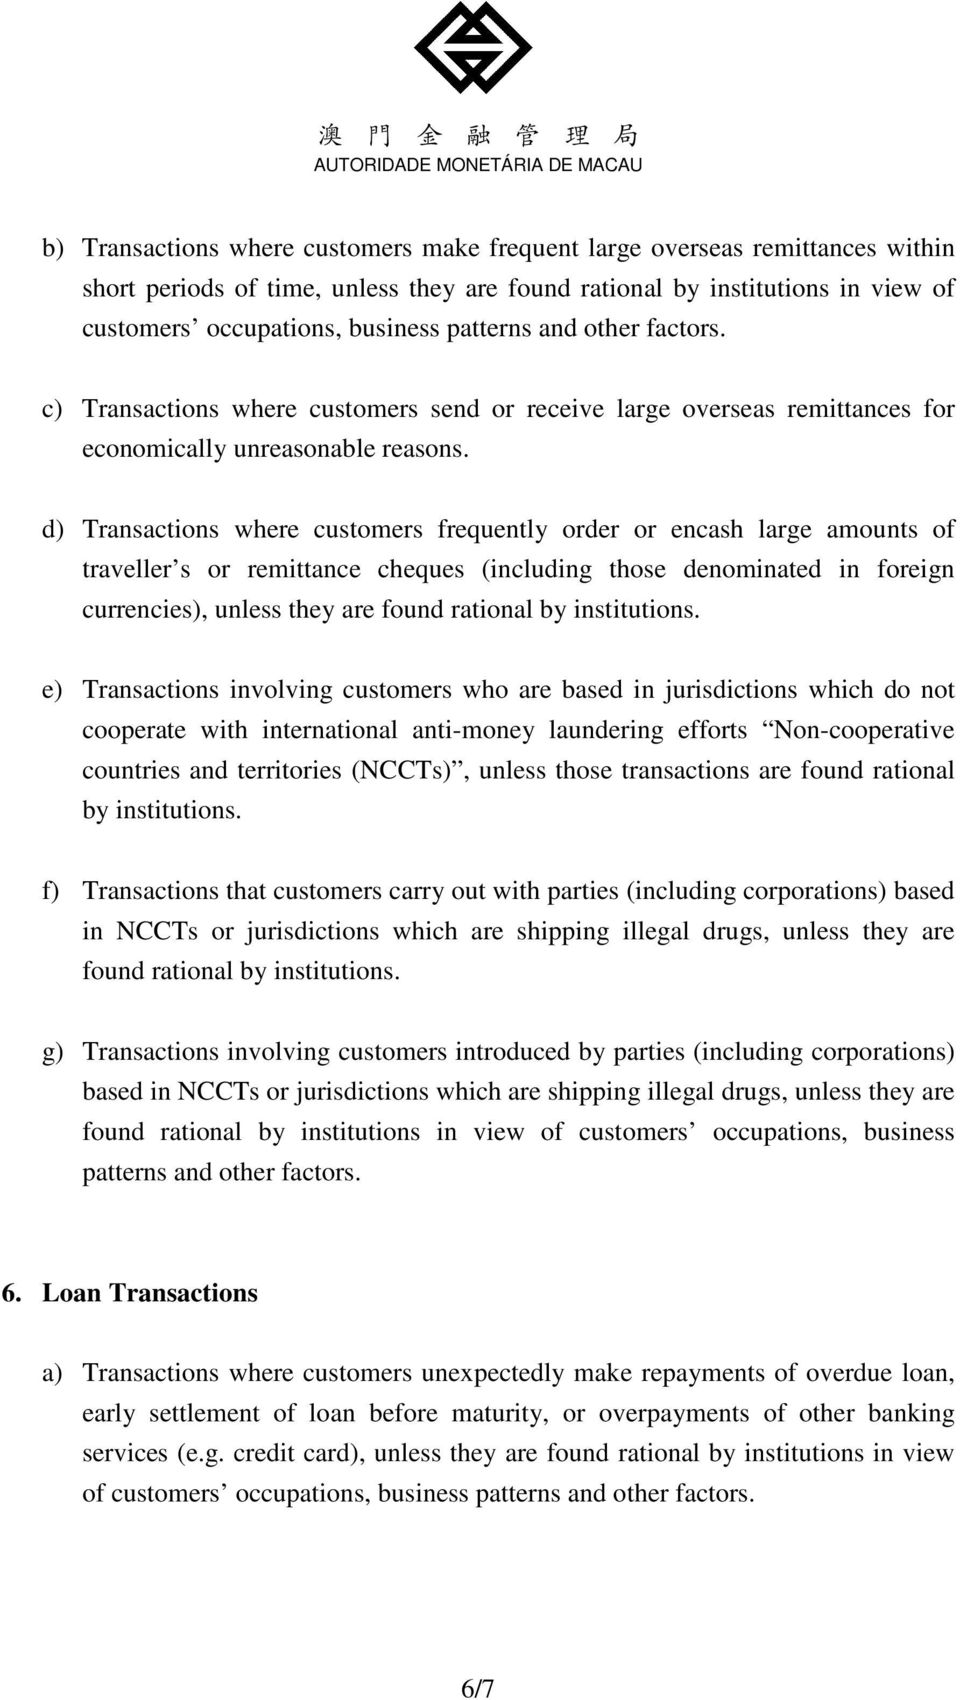 d) Transactions where customers frequently order or encash large amounts of traveller s or remittance cheques (including those denominated in foreign currencies), unless they are found rational by